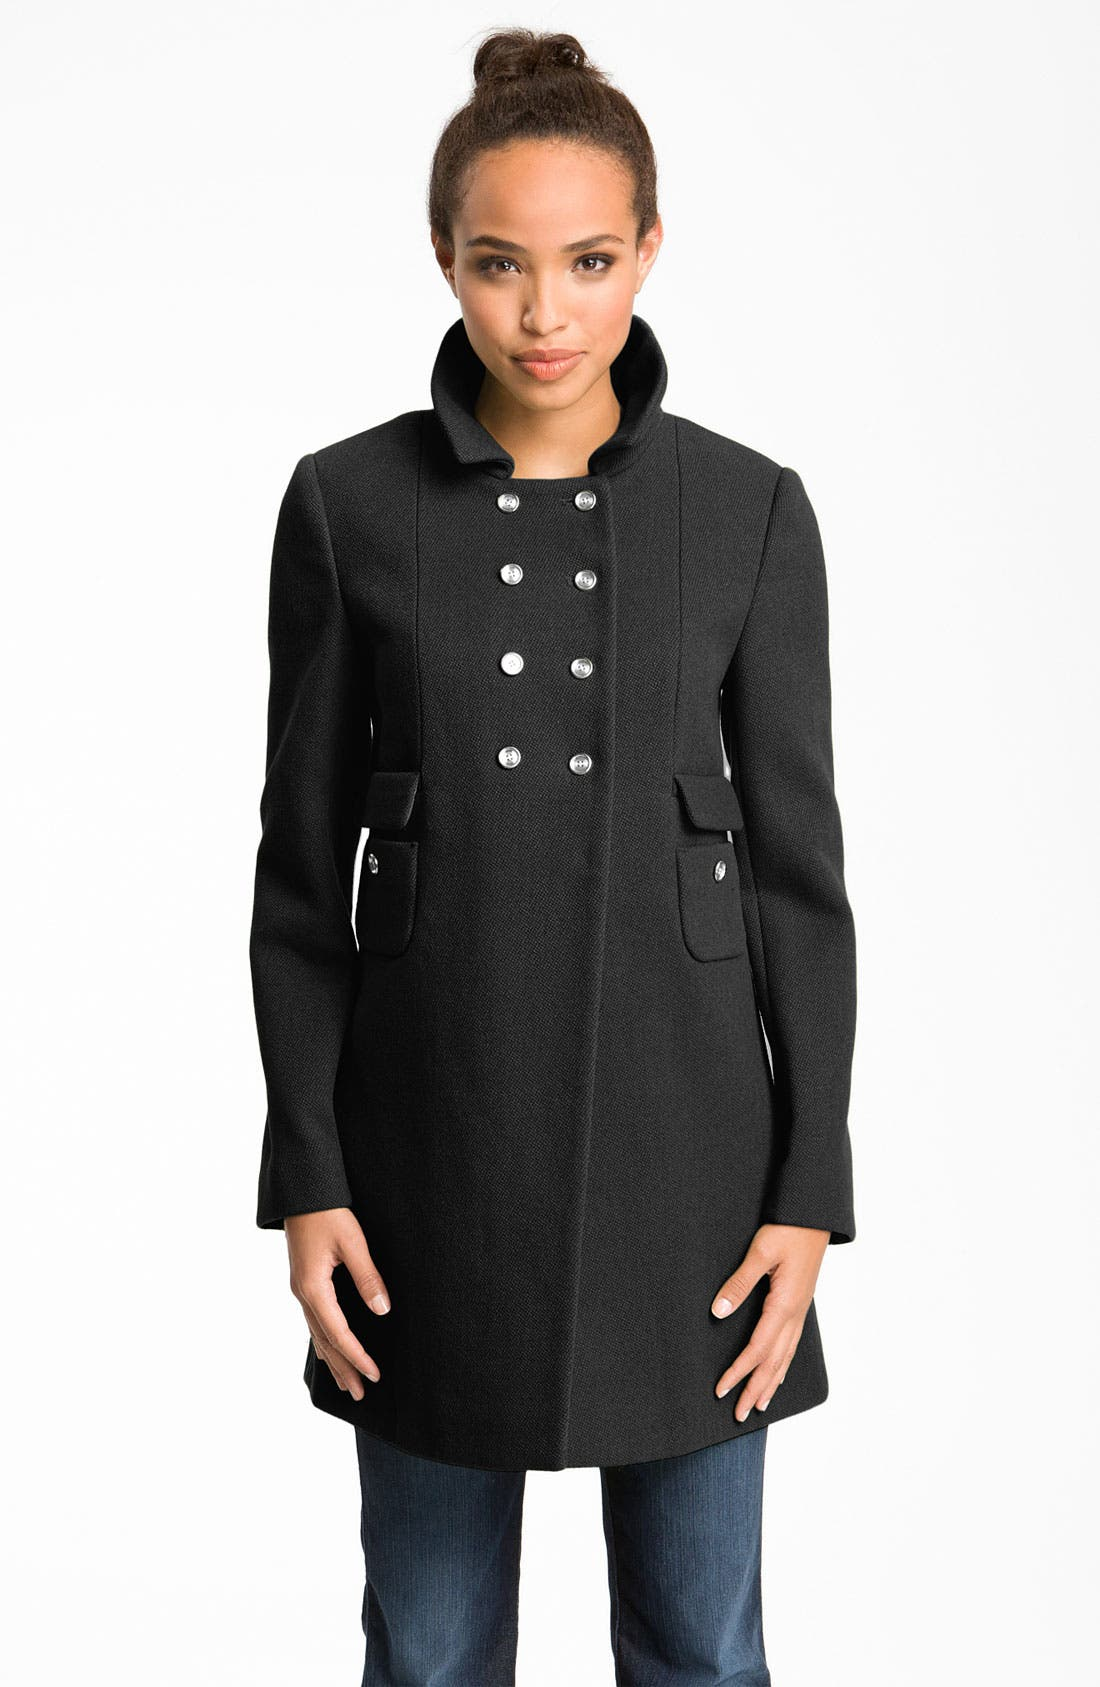 Alternate Image 1 Selected - Calvin Klein High Double Breasted Textured Peacoat